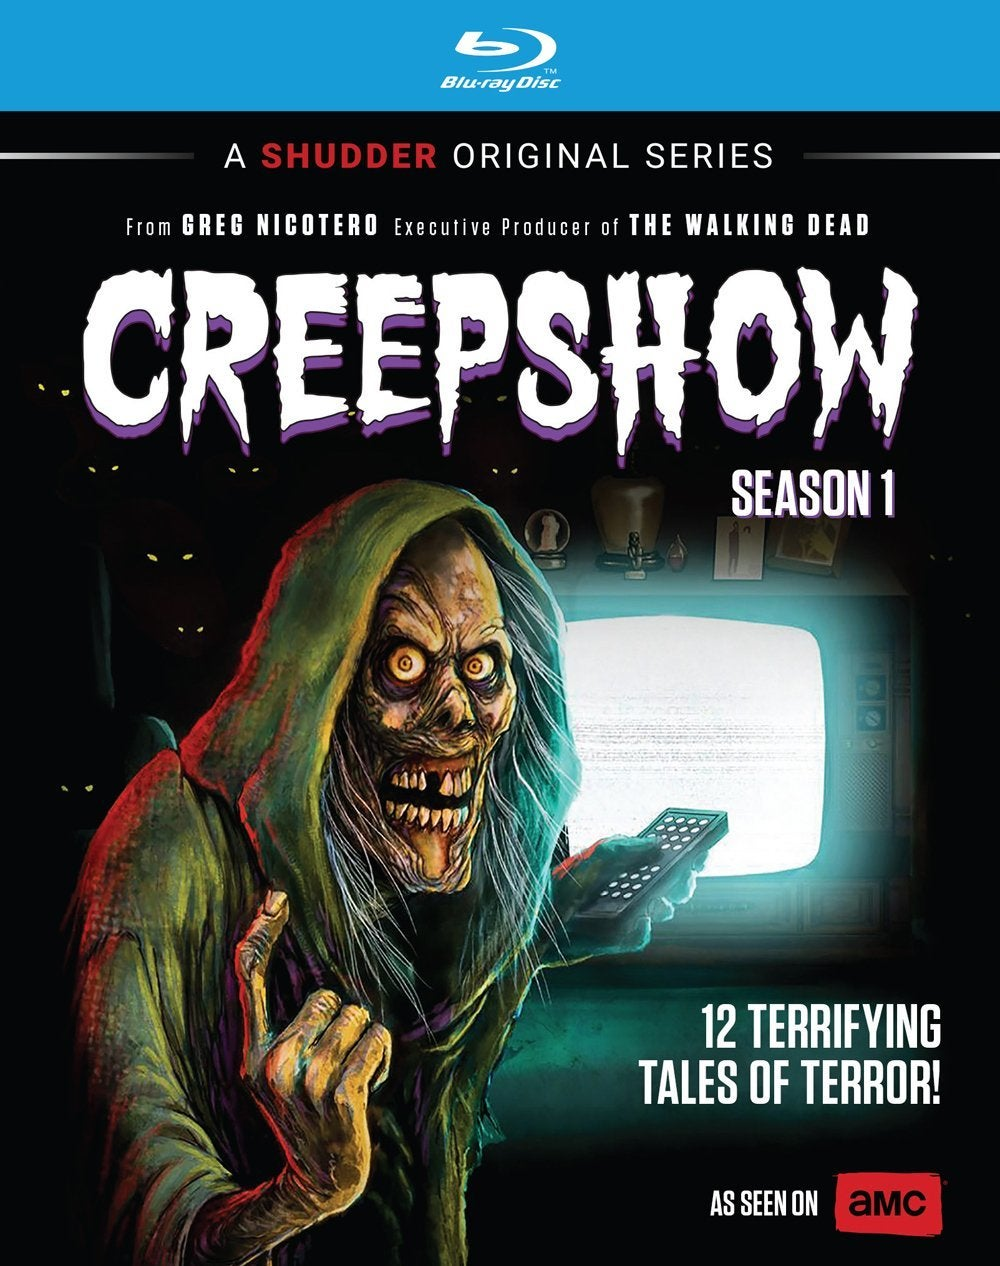 creepshow season one blu ray cover shudder